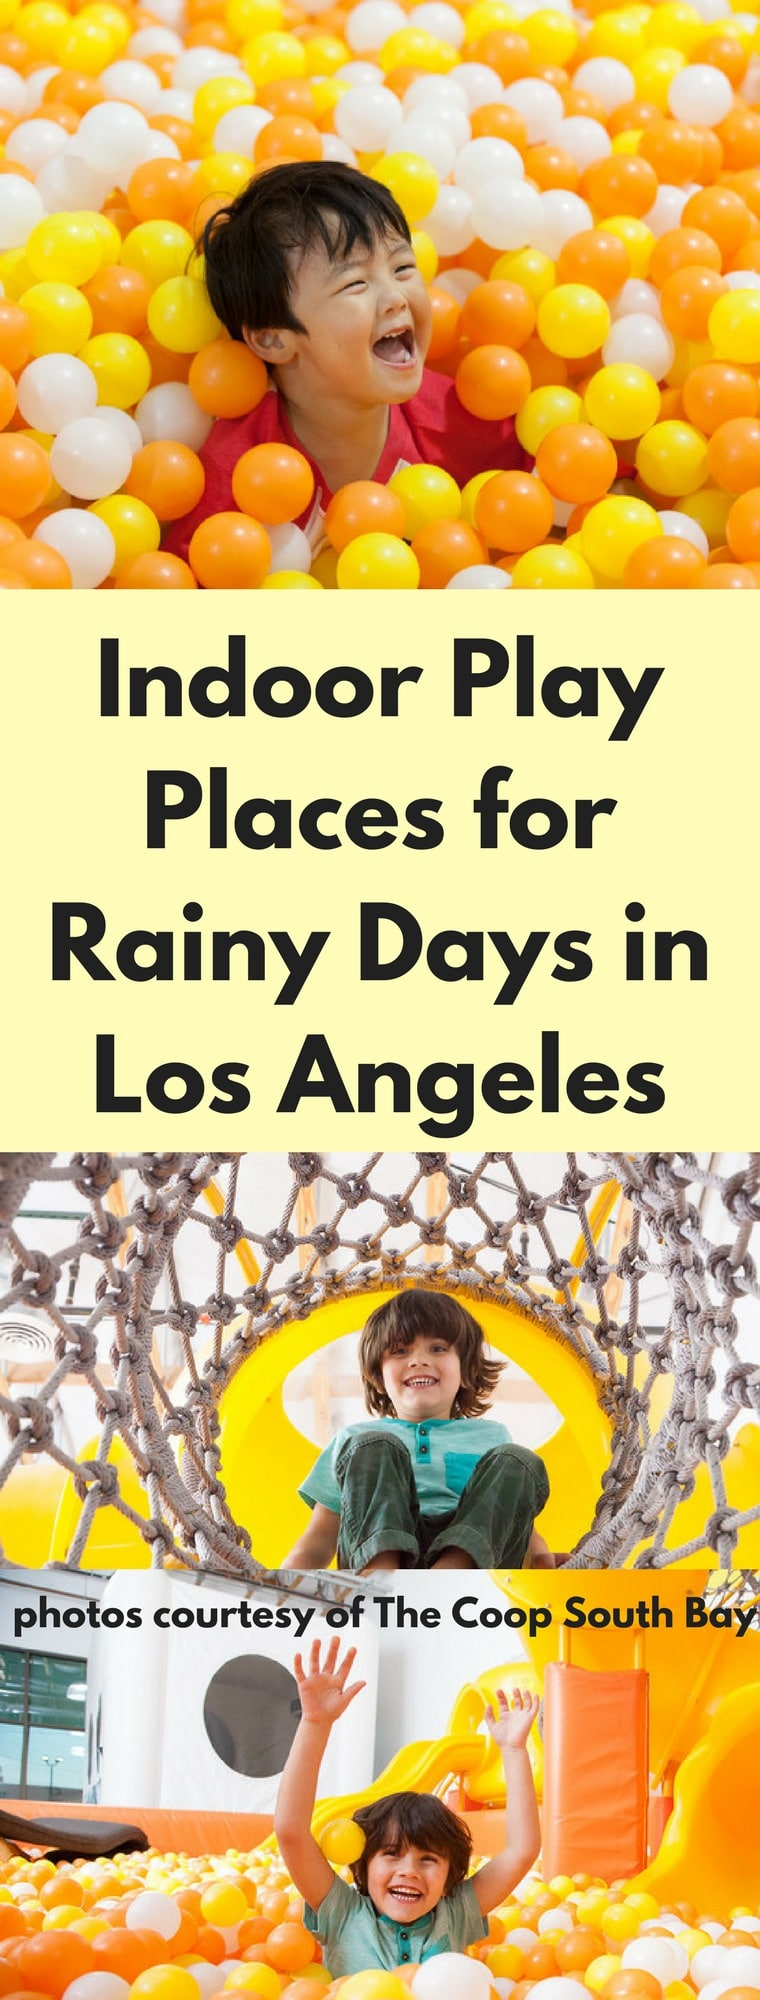 If it's cold, raining or really hot in Los Angeles, check out one of these fun indoor play places. #summer #summerfun #summerinlosangeles #familytravel #LosAngeles #southerncalifornia